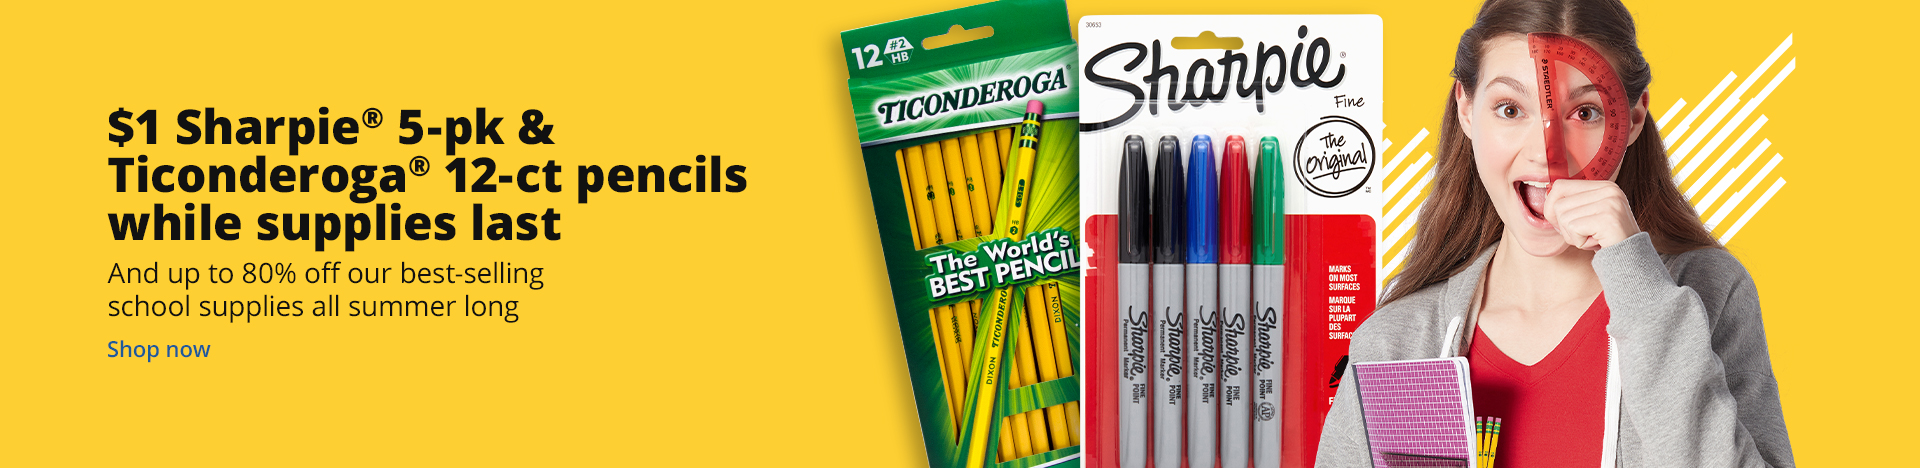 $1 Sharpie 5-pk & Ticonderoga 12-ct pencils while supplies last and up to 80% off our best selling school supplies all summer long - shop now